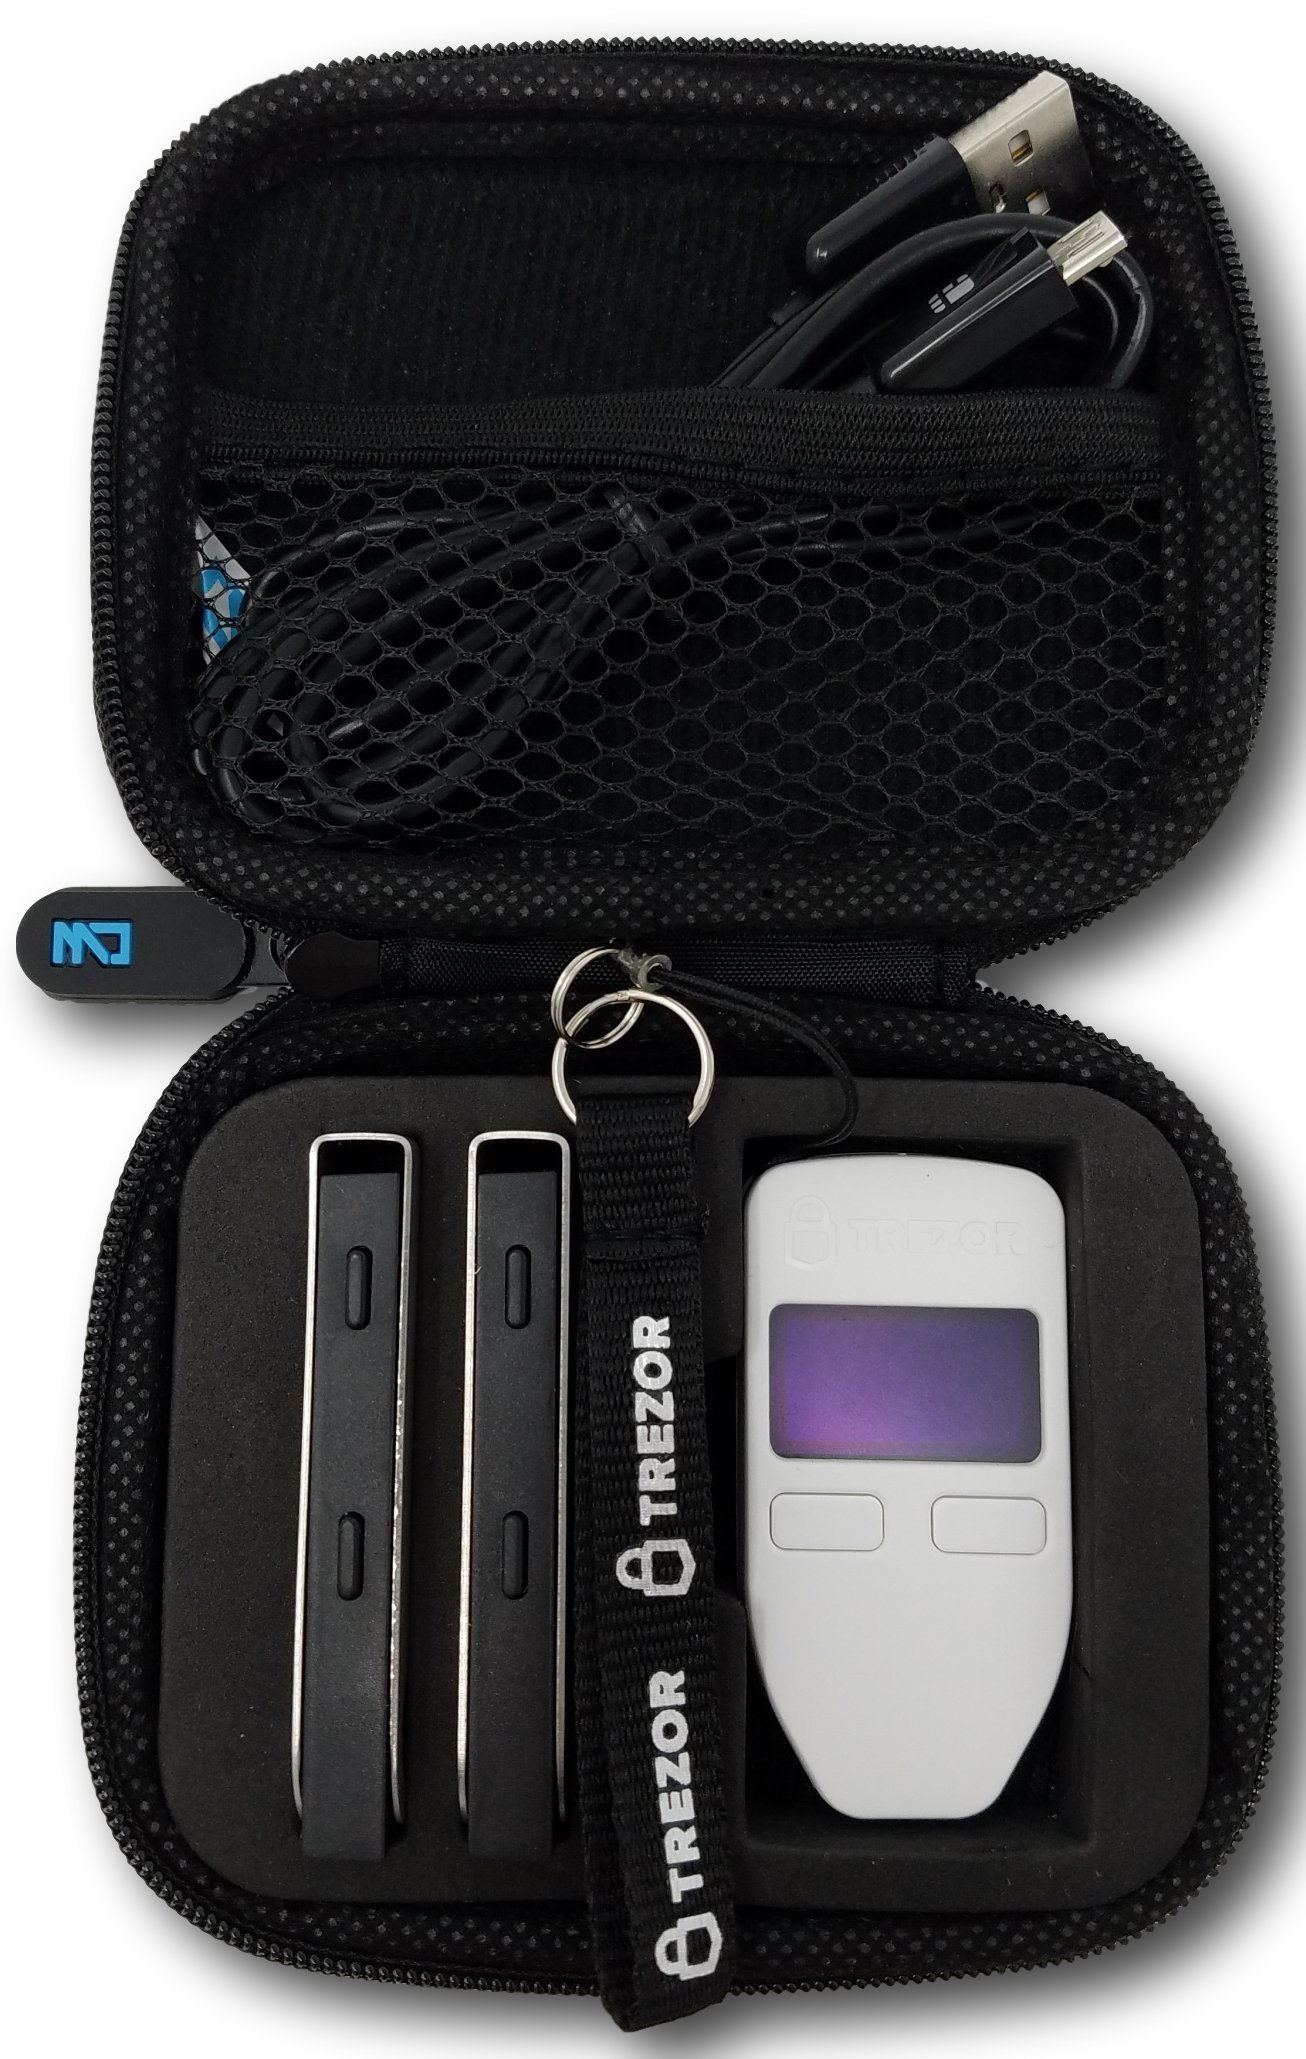 Trezor & Ledger Nano S Combo Carrying Case with Zipper, Bitcoin Hardware Wallet Storage, Safely Store Your Cryptocurrency Wallets and Secure From Damage by CW Cases (Trezor & Ledger Case)